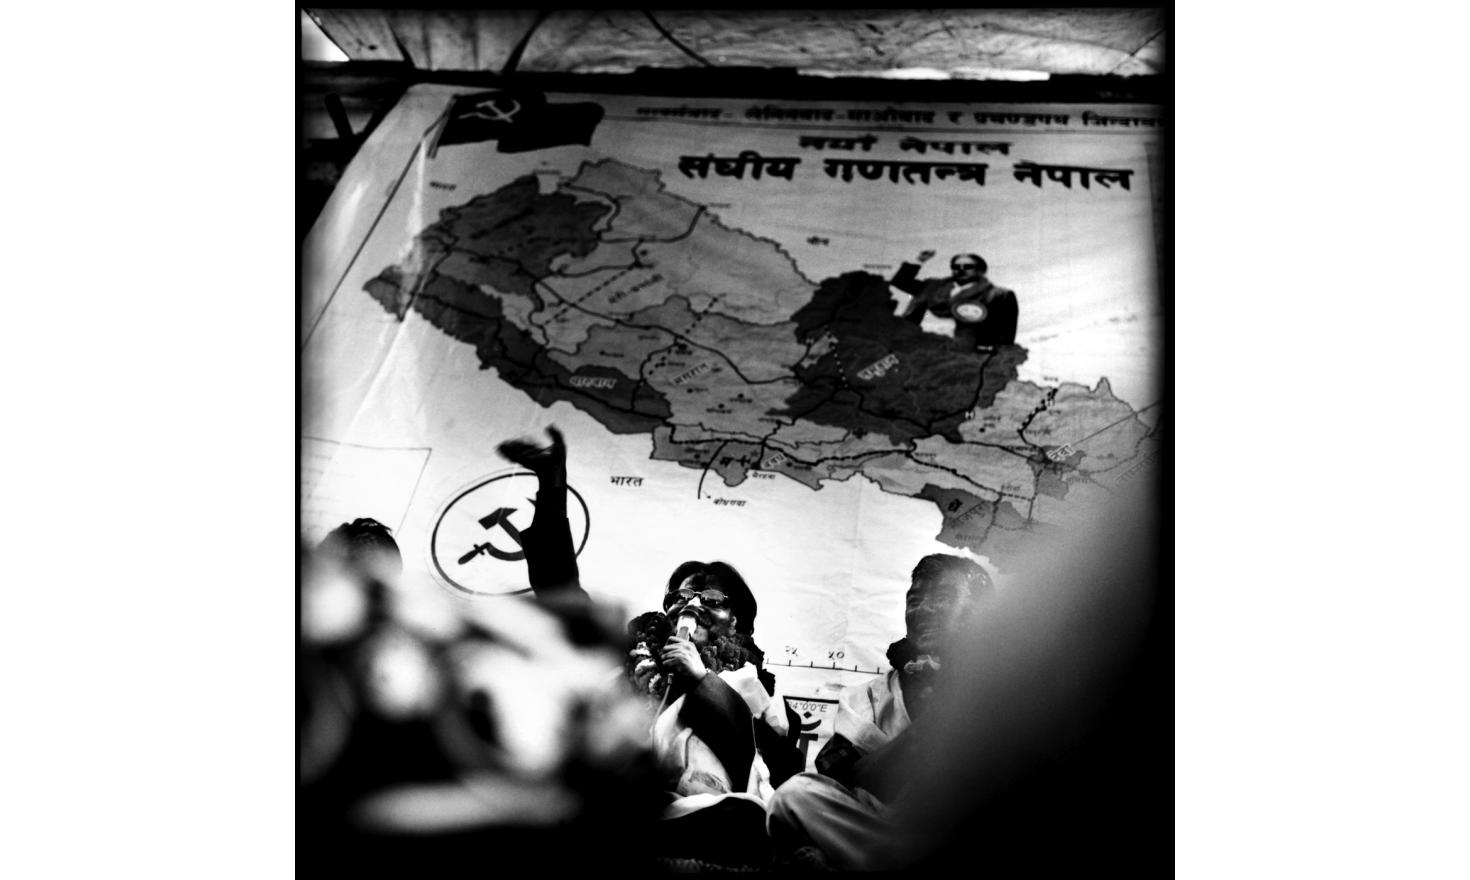 Prachanda, leader of the CPN-Maoist in Kirtipur near Kathmandu, where he came to thank his electors to have voted for him during the Constituant Assembly elections. 19th of April 2008